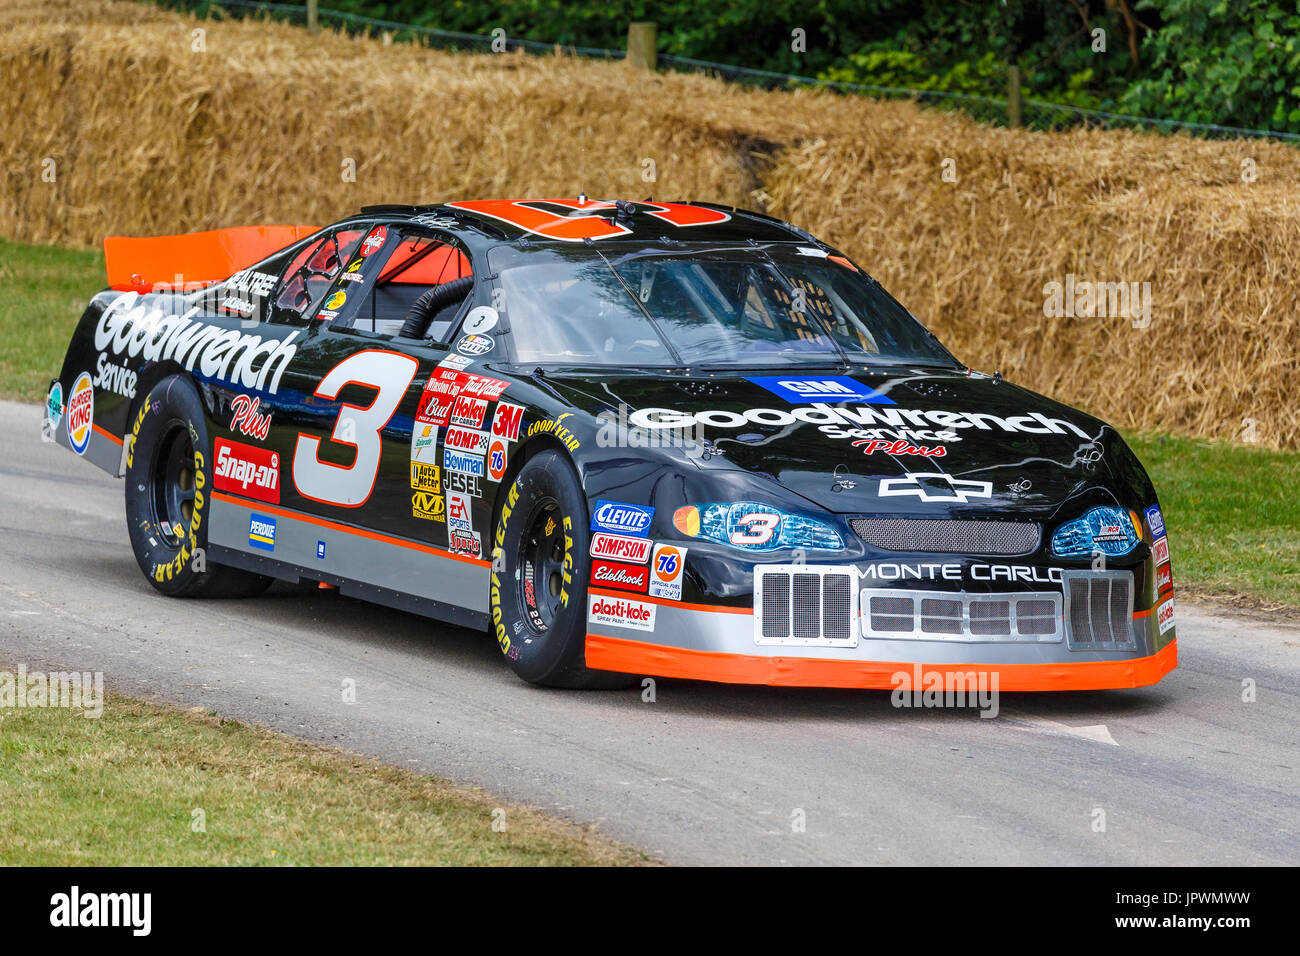 Chevrolet Monte Carlo Nascar Racer With Driver Dale Earnhardt Jpwmww